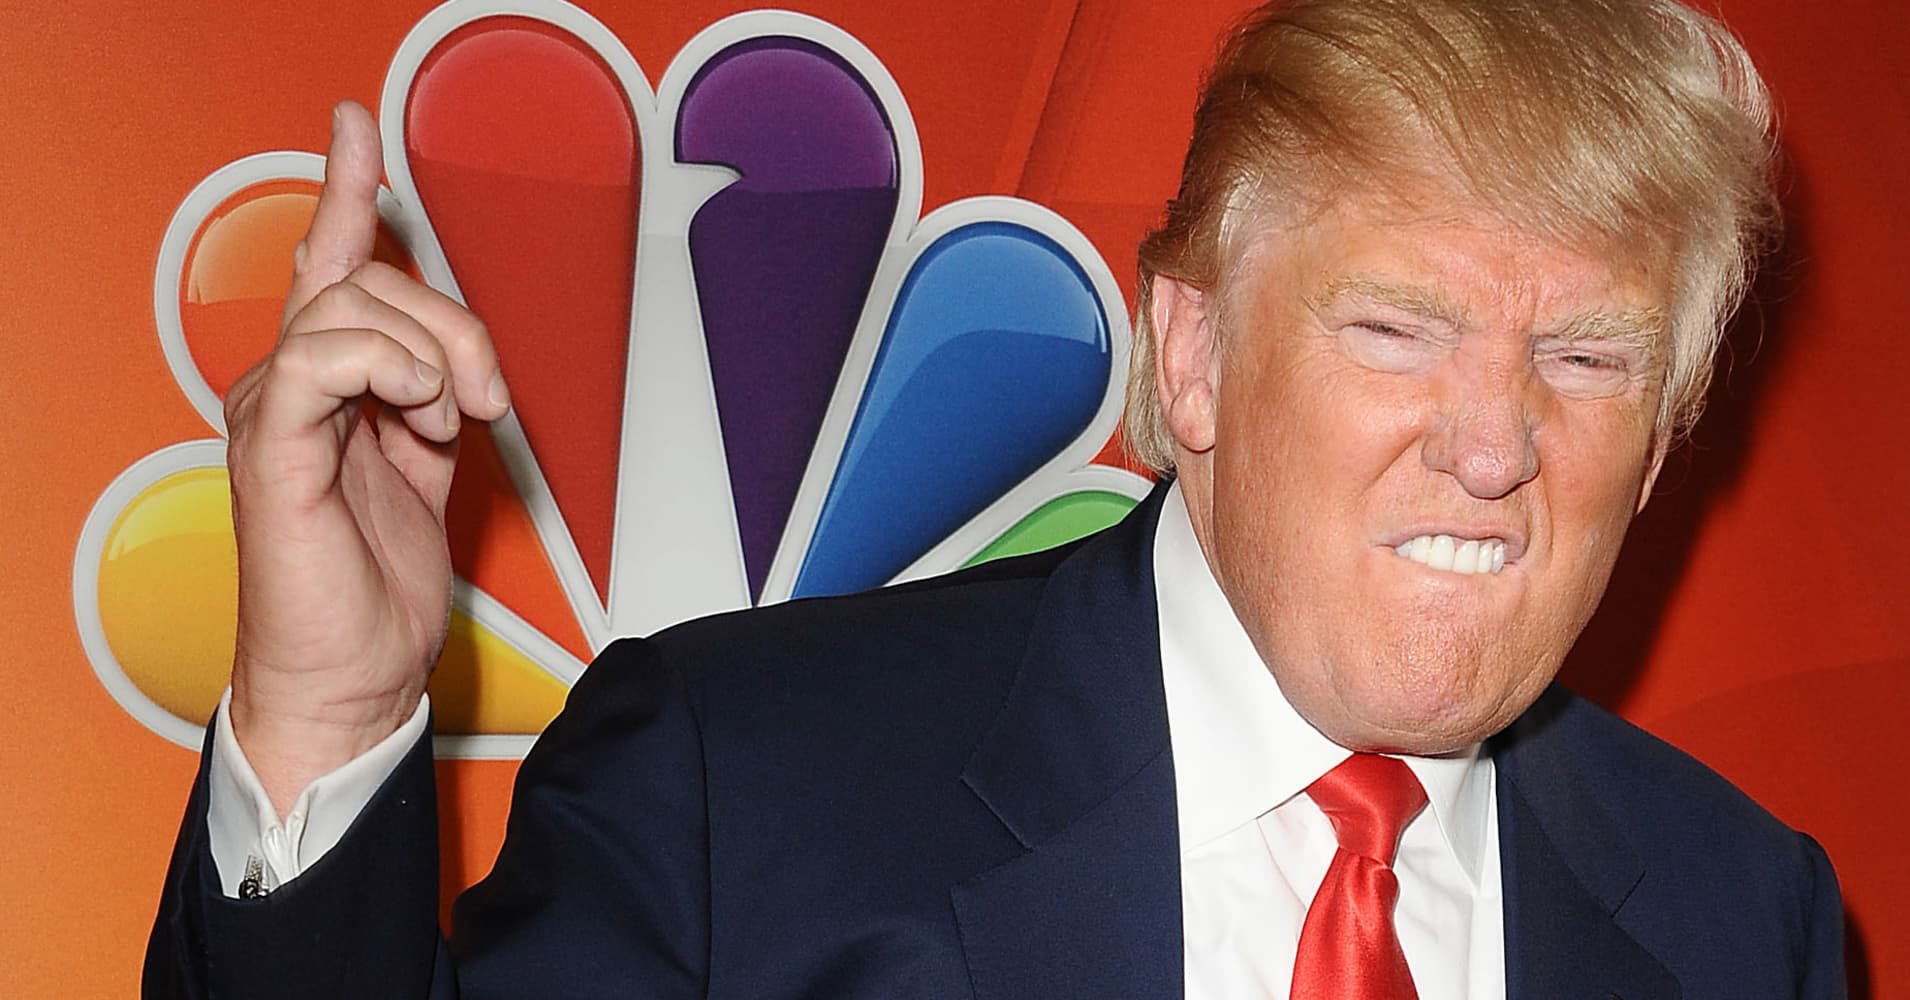 Trump threatens to 'challenge' NBC's license; Comcast shares dip slightly